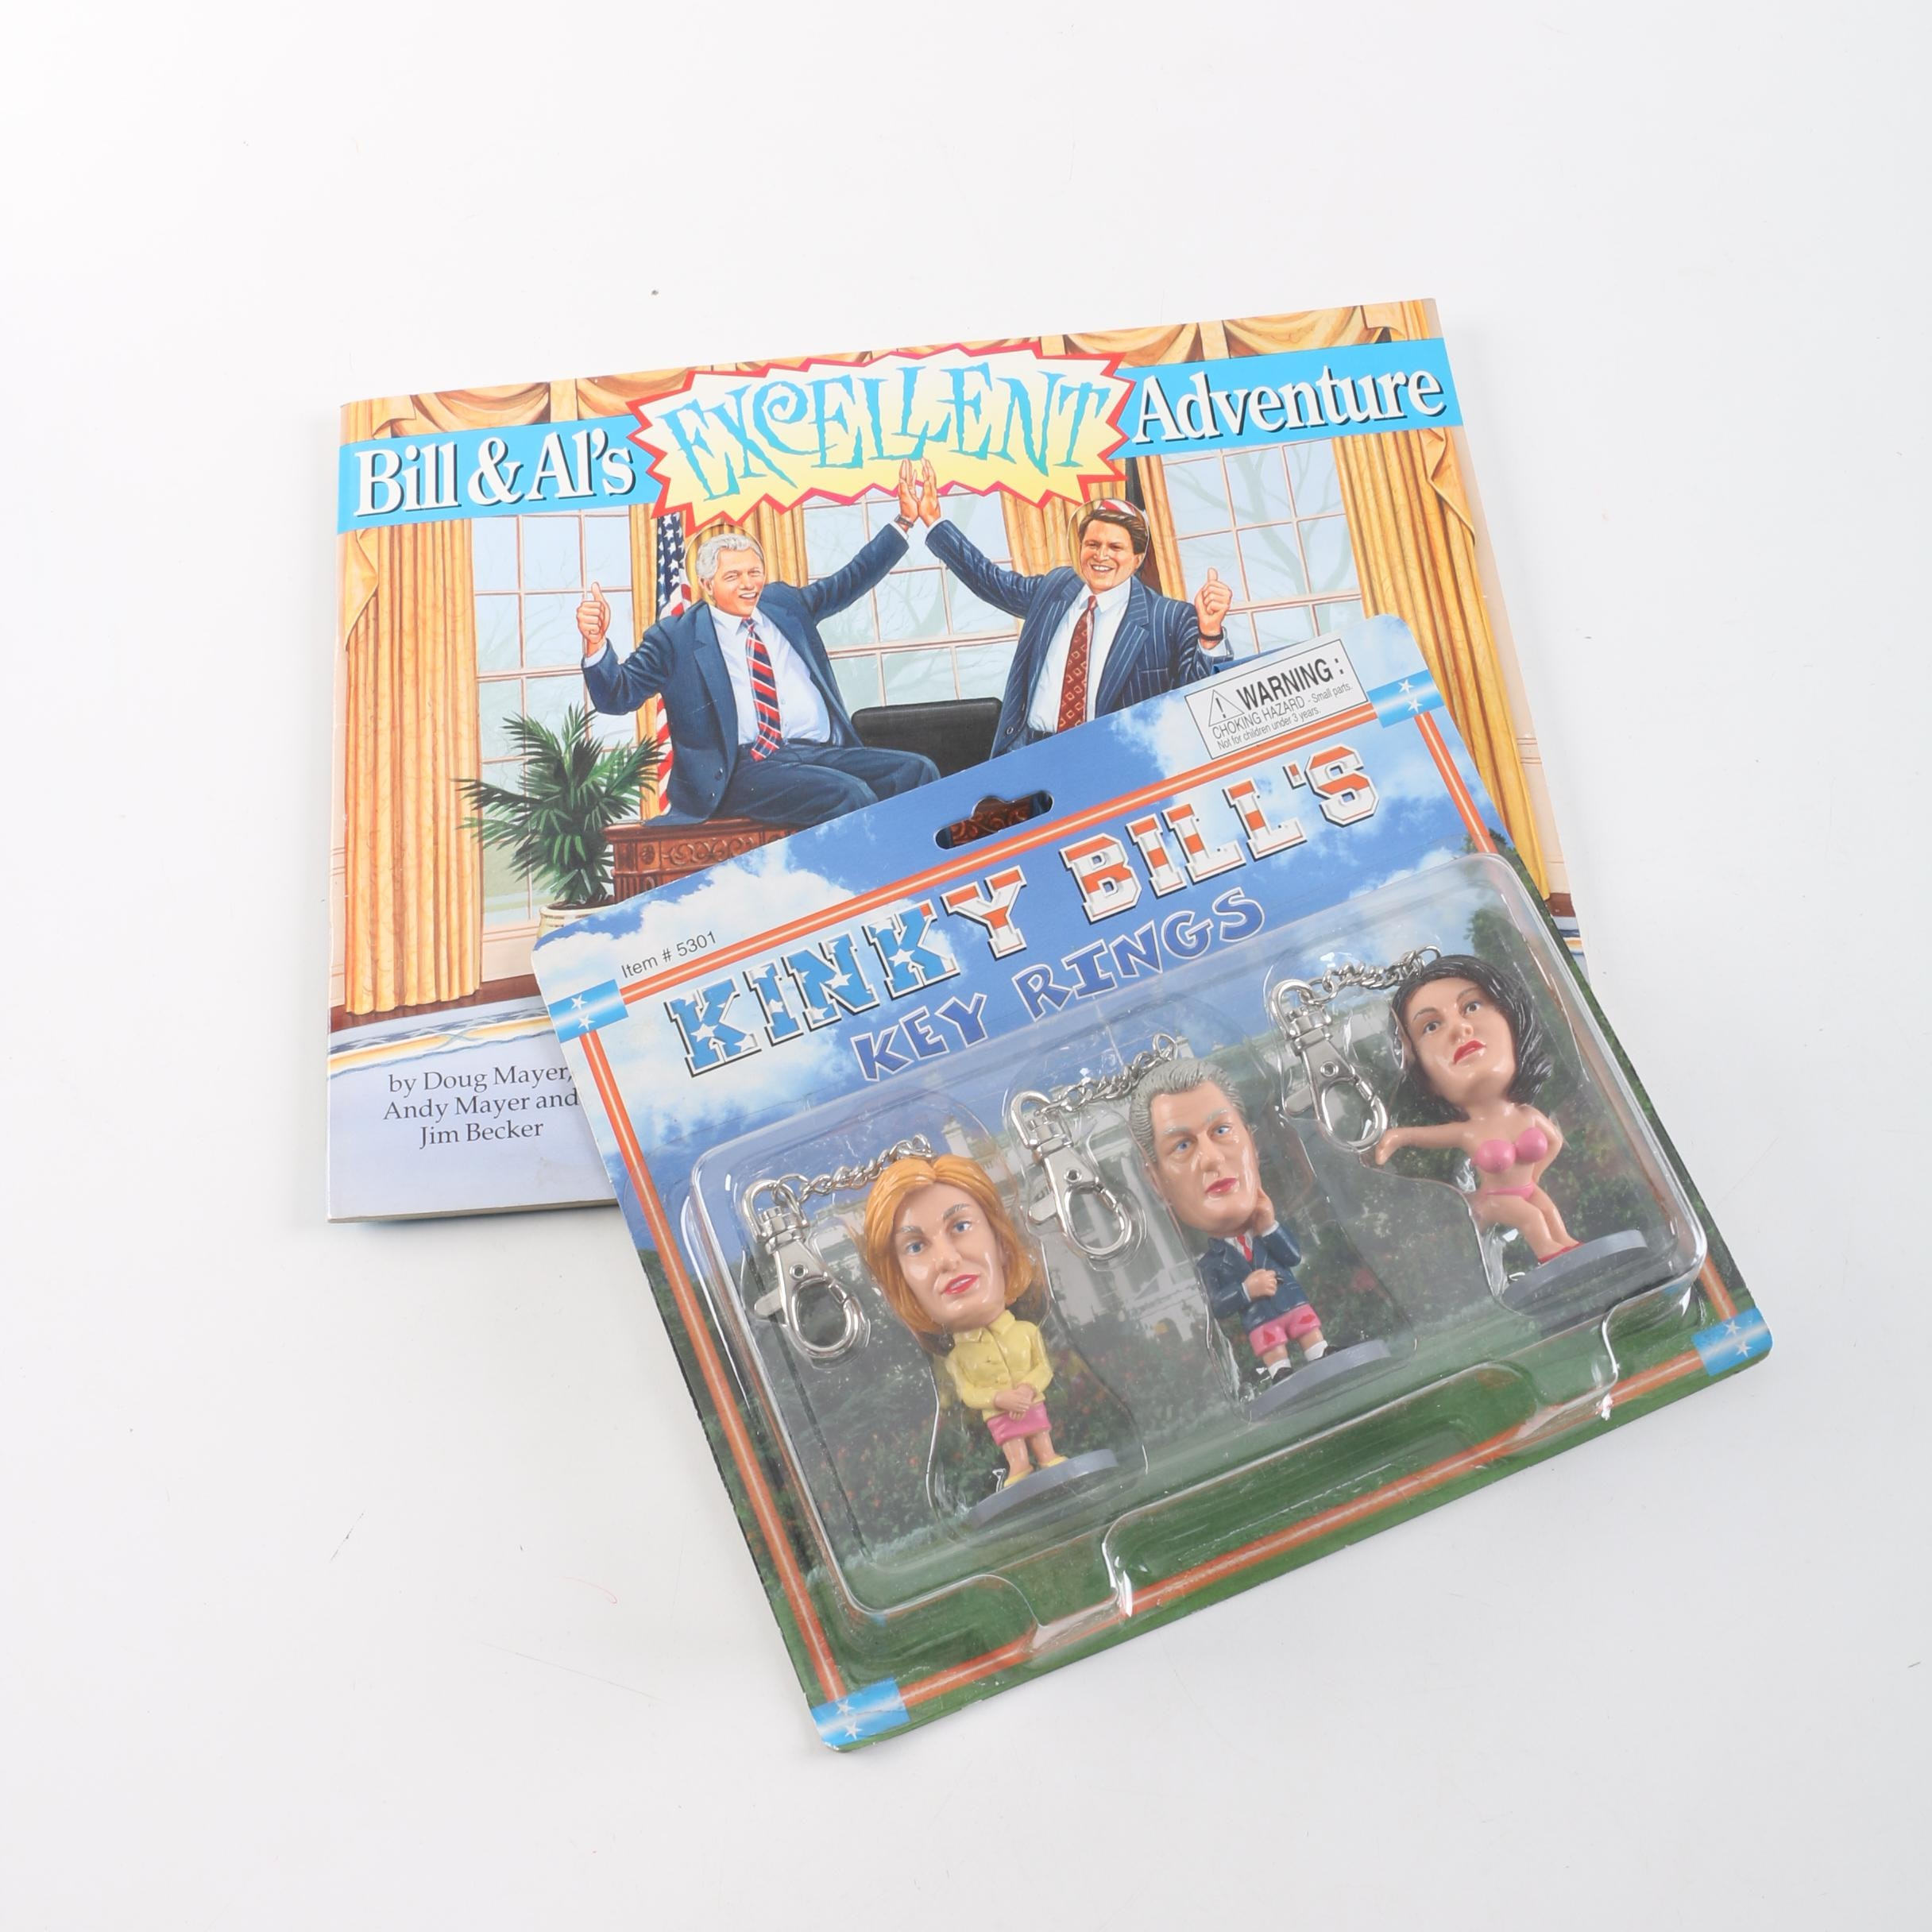 Irreverent Bill Clinton Key Chains and Paper Doll Book